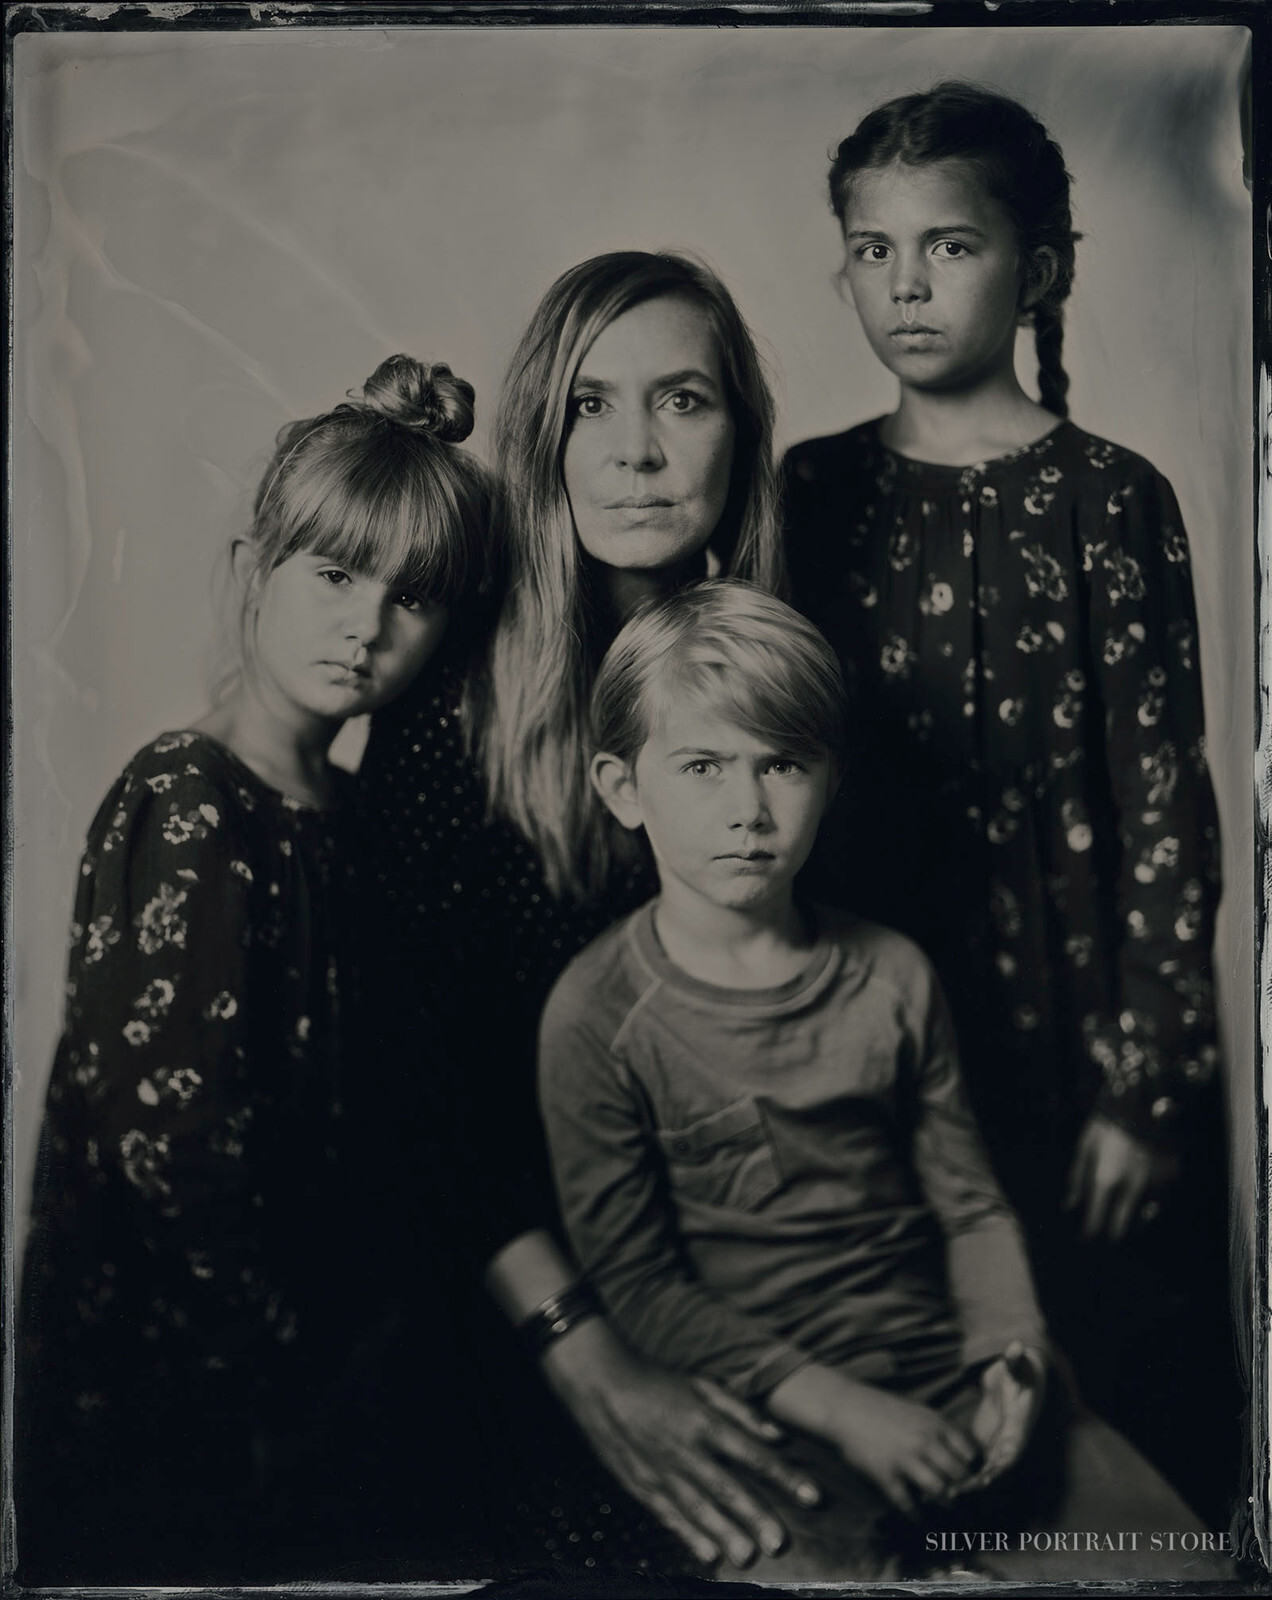 Badass Family-Silver Portrait Store-Scan from Wet plate collodion-Tintype 20 x 25 cm